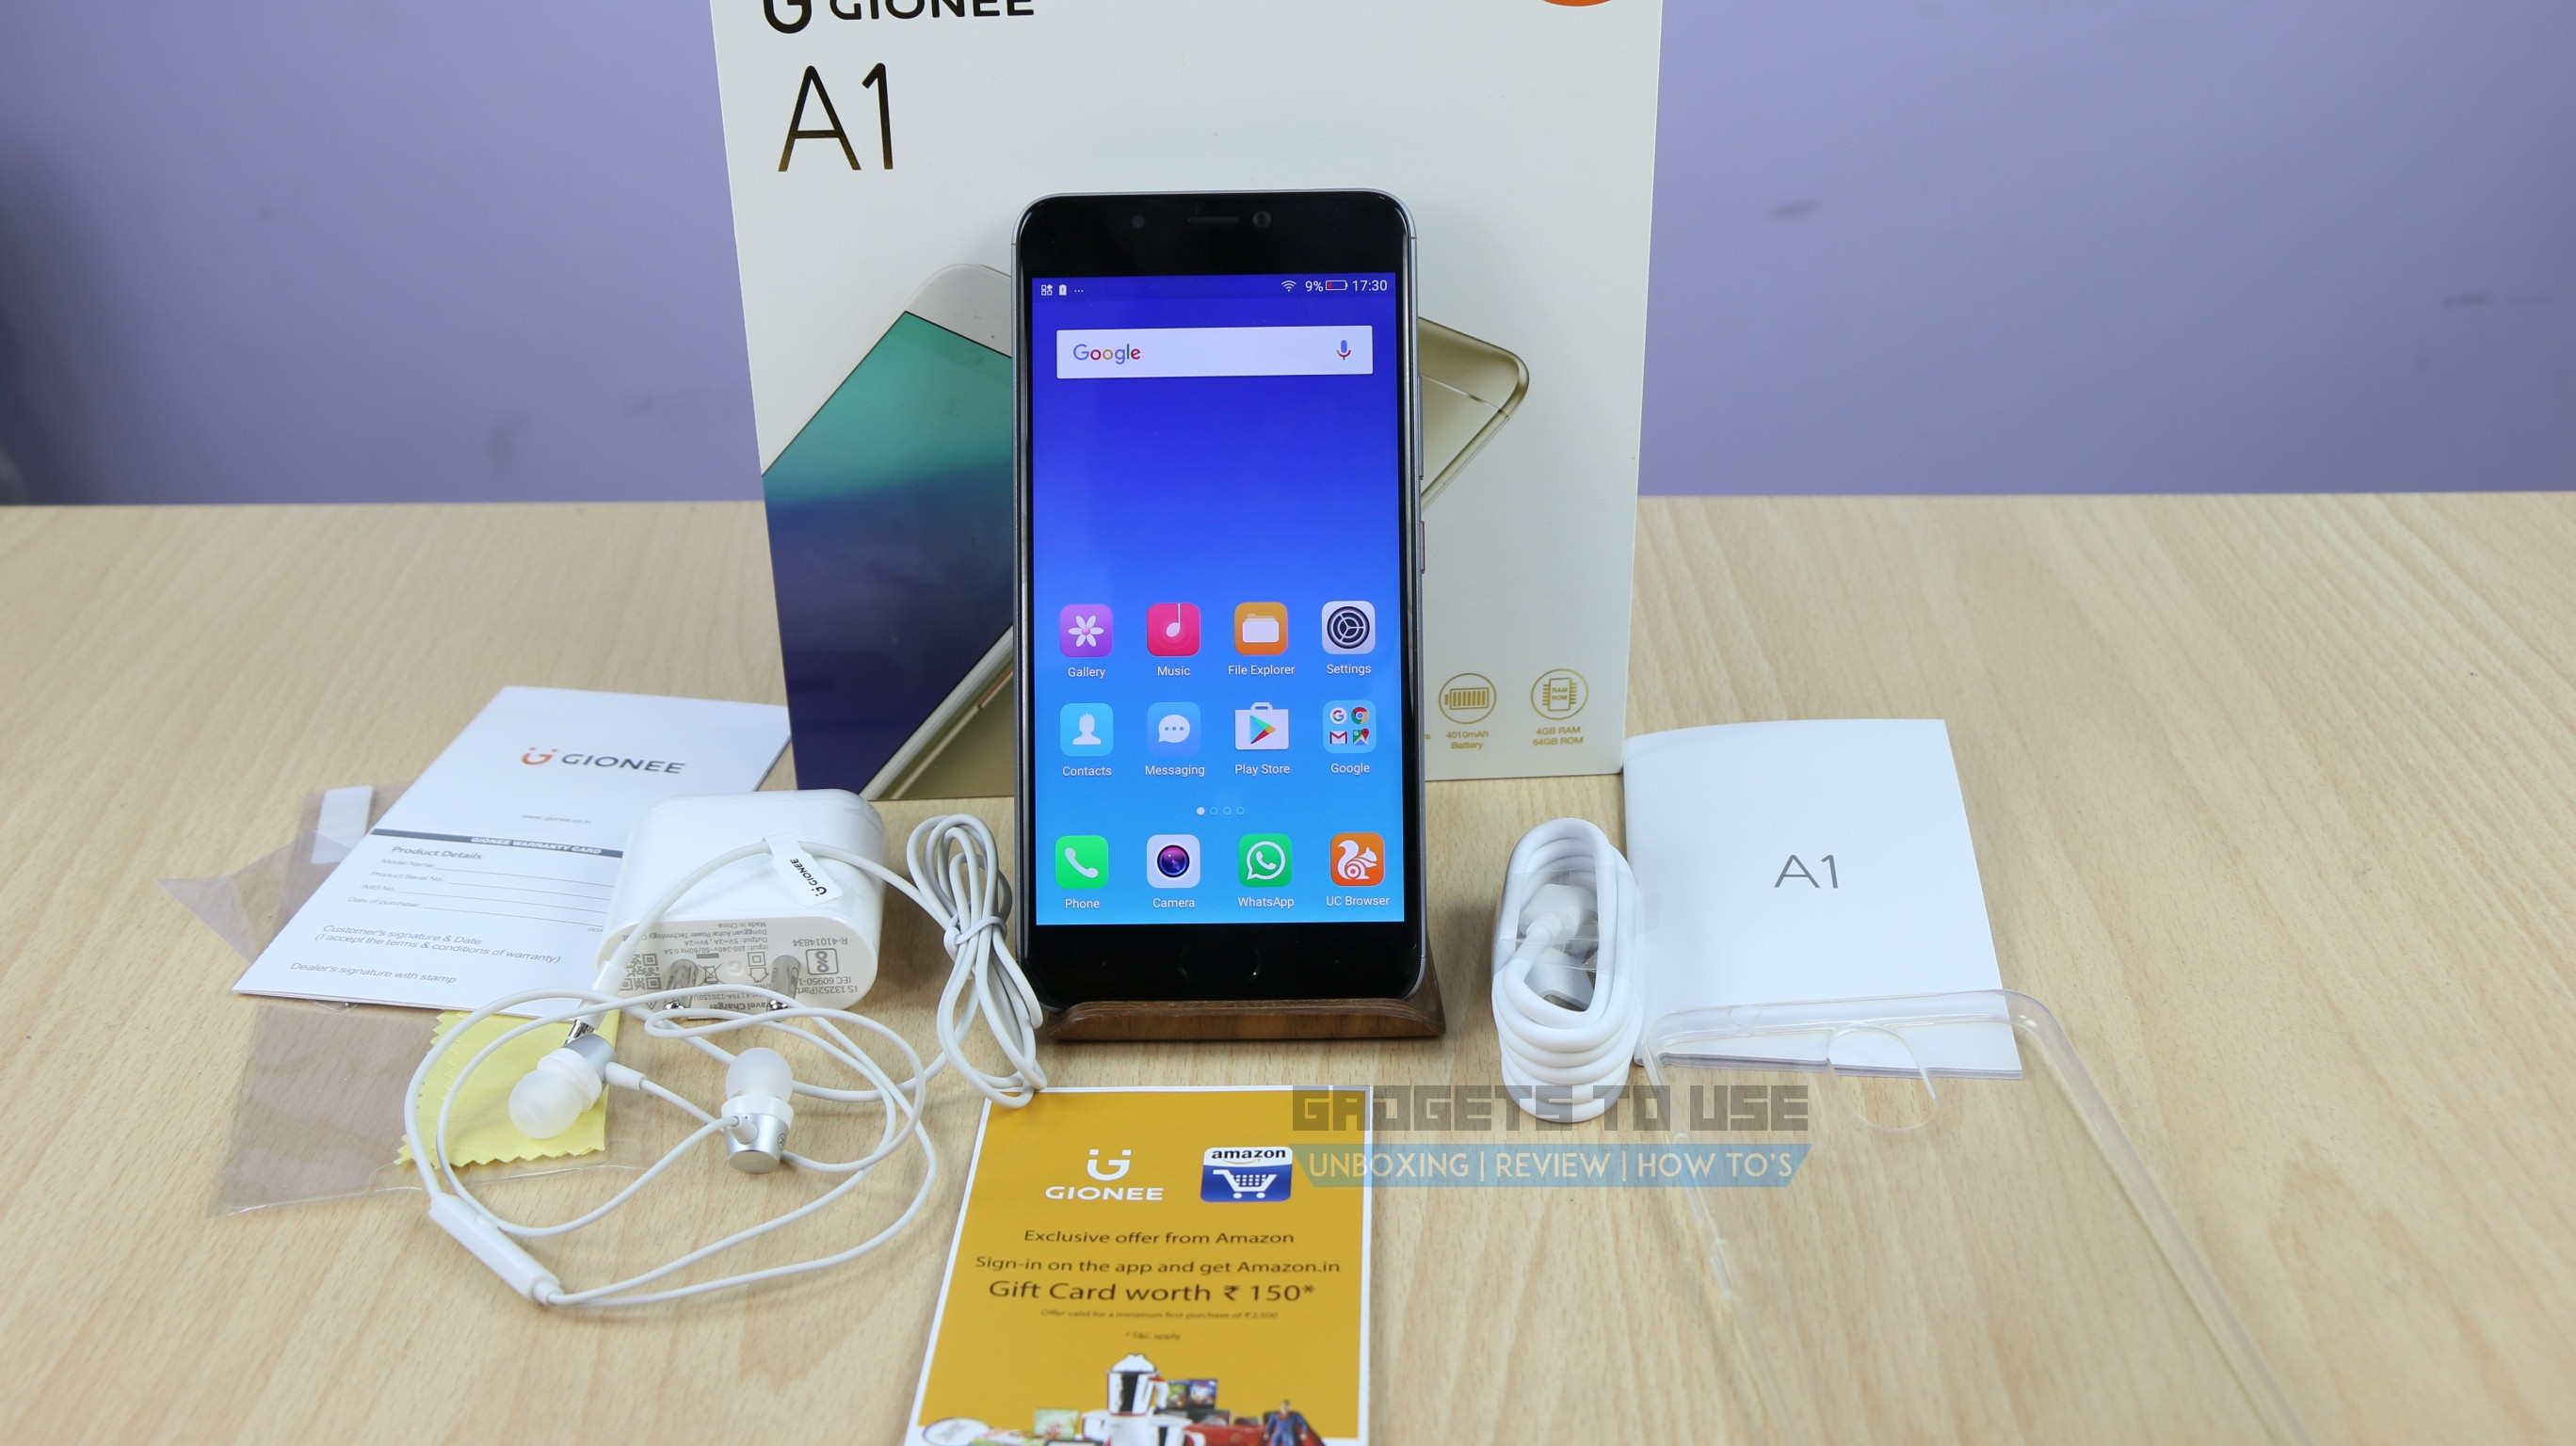 gionee a1 unboxing quick review gaming battery and